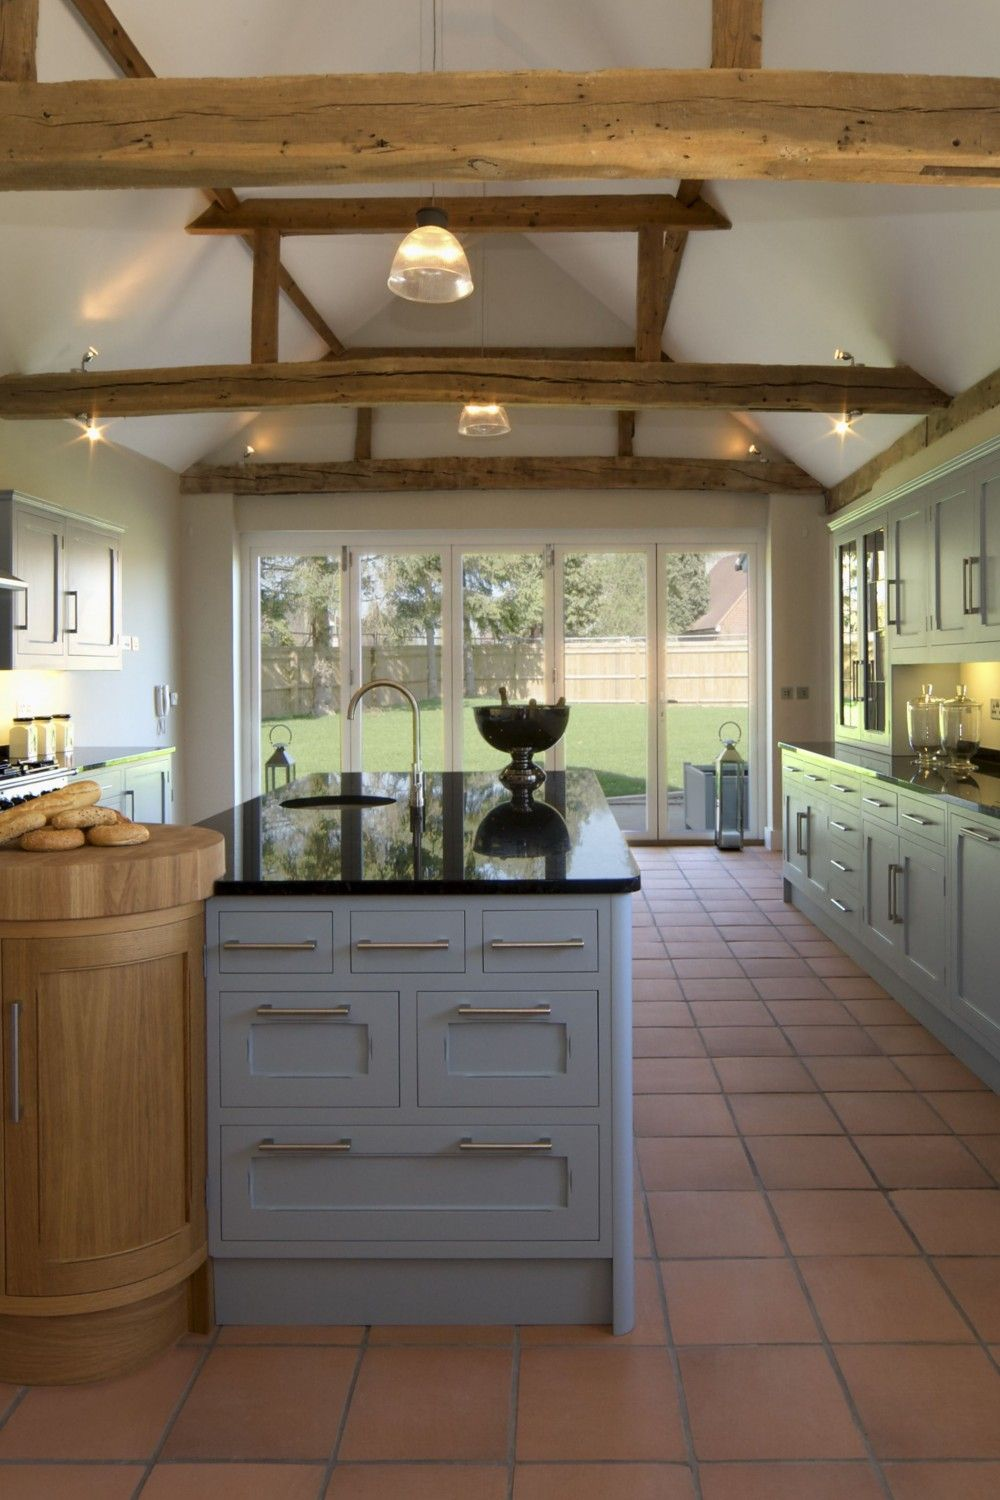 13 lovely farmhouse kitchen ideas for your next reno on best farmhouse kitchen decor ideas and remodel create your dreams id=11489